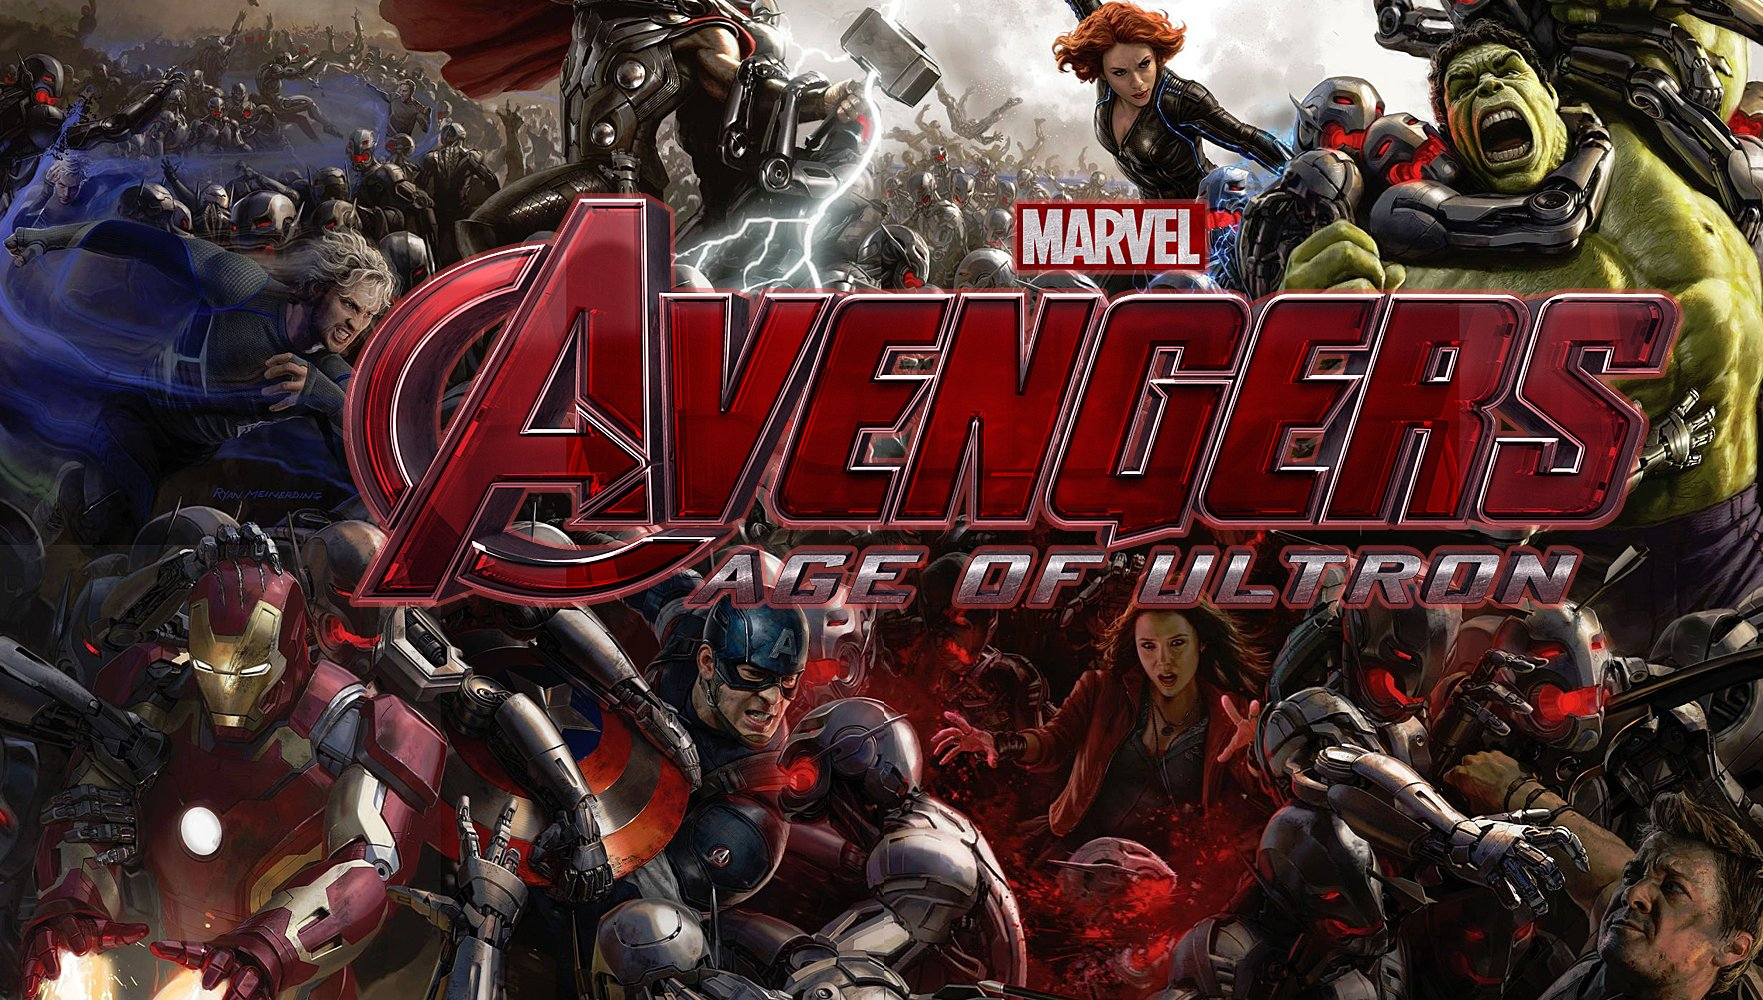 Avengers: Age of Ultron - Critique du film de Joss Whedon